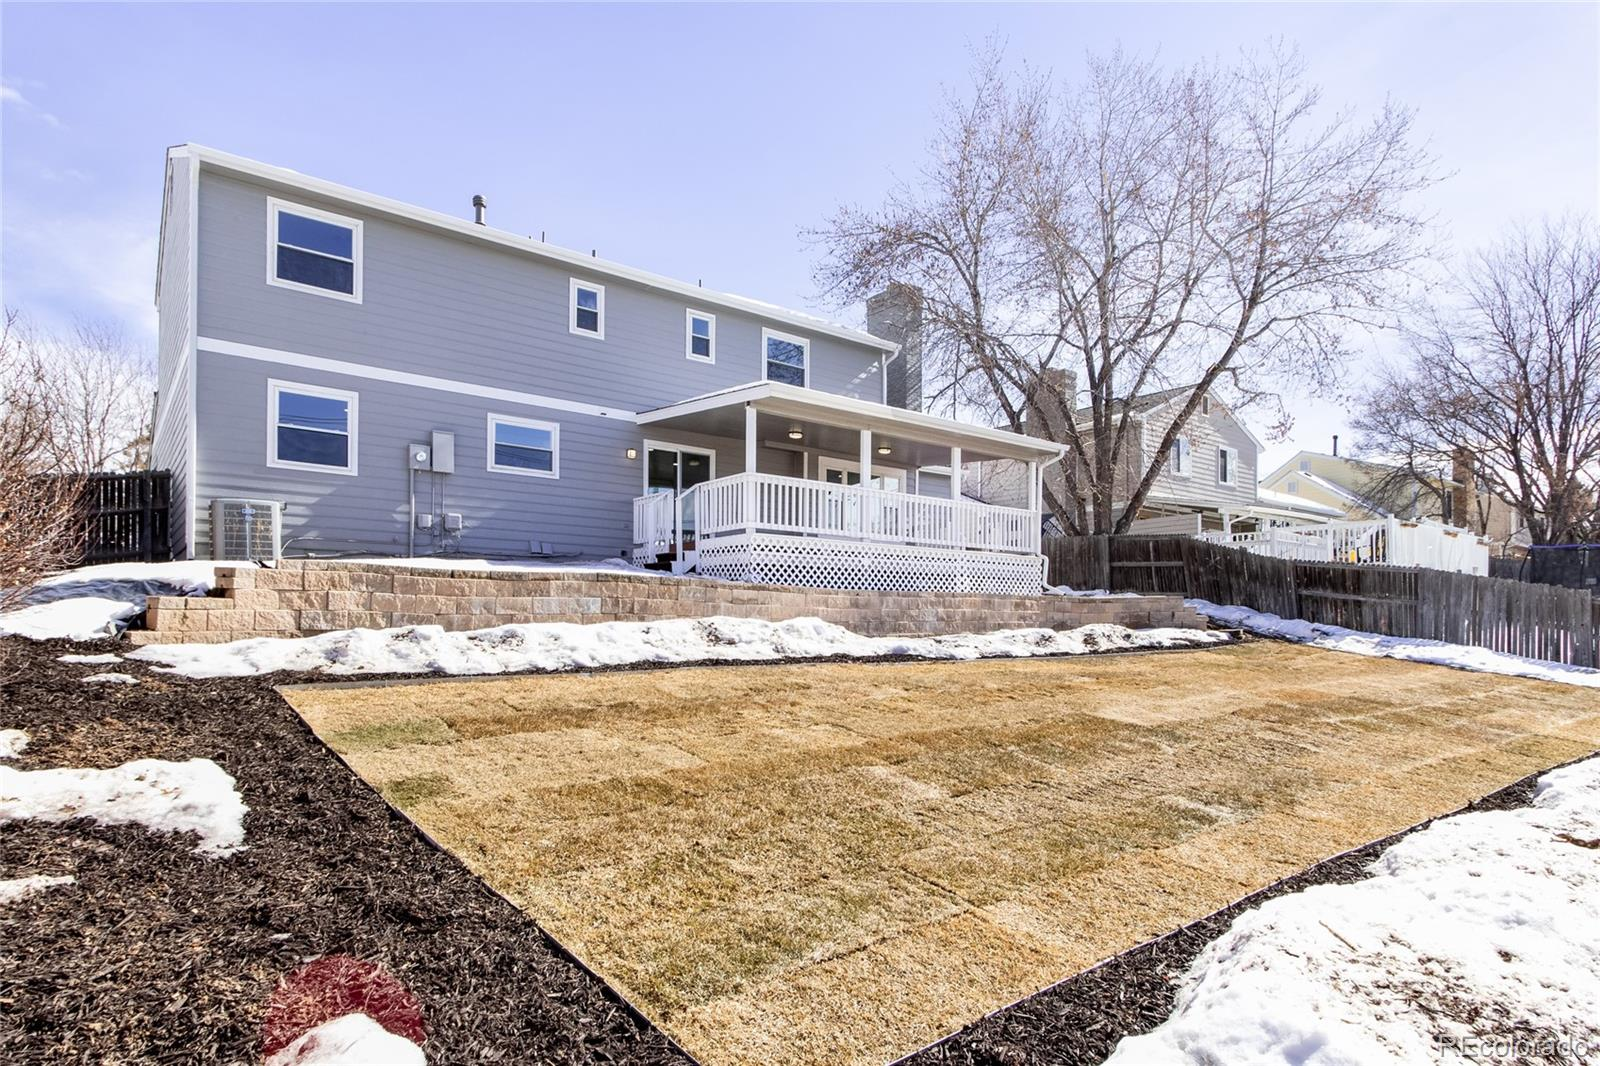 MLS# 7337243 - 37 - 7985 S Logan Drive, Littleton, CO 80122